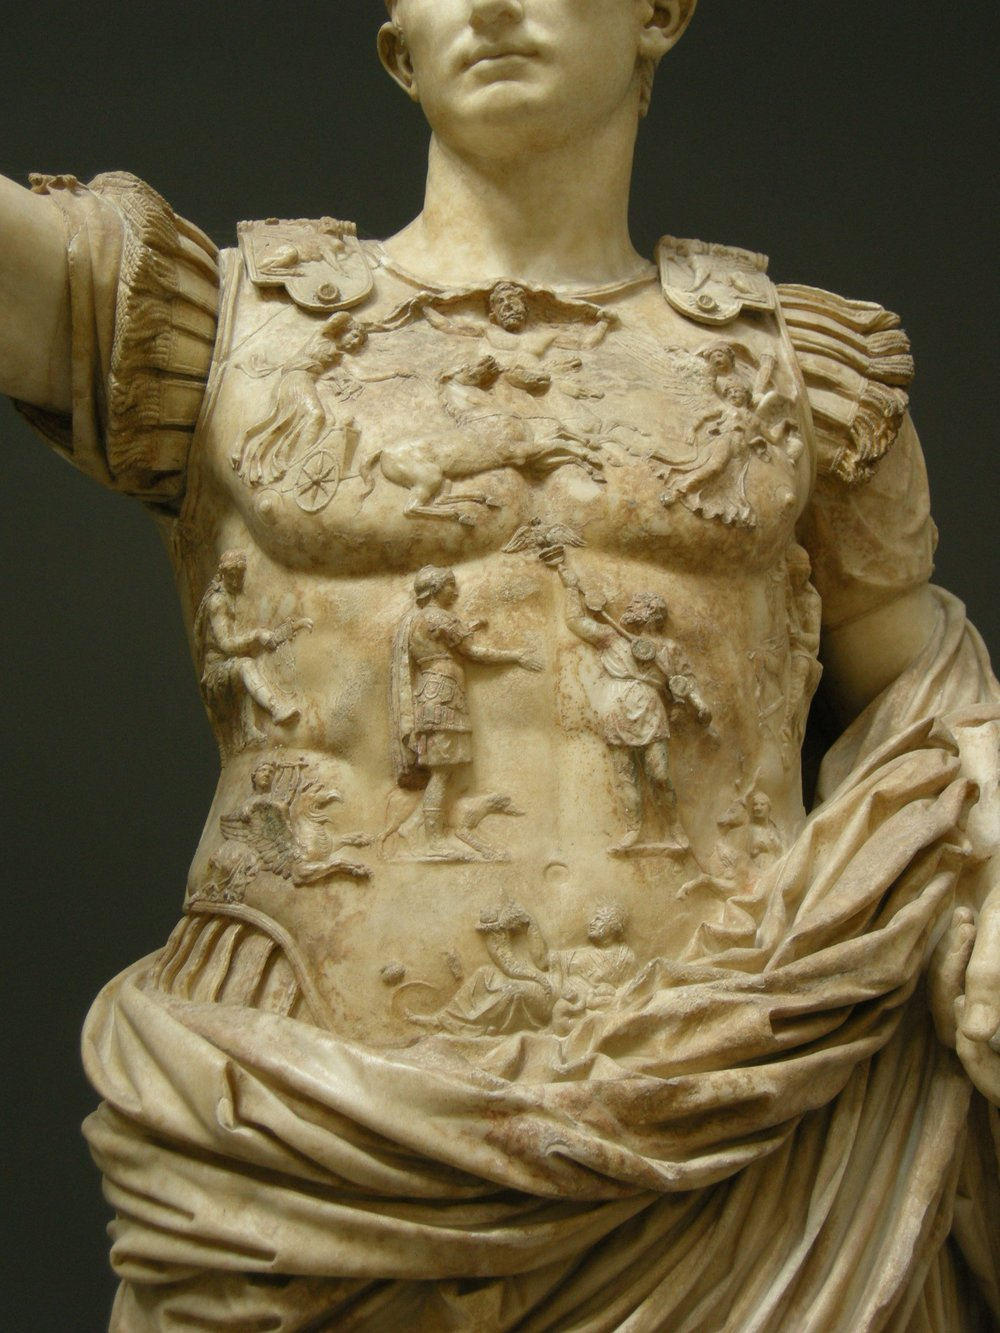 Caelus appears at the top of the curiass of Augustus of Prima Porta. One of the few depictions of Caelus in art.